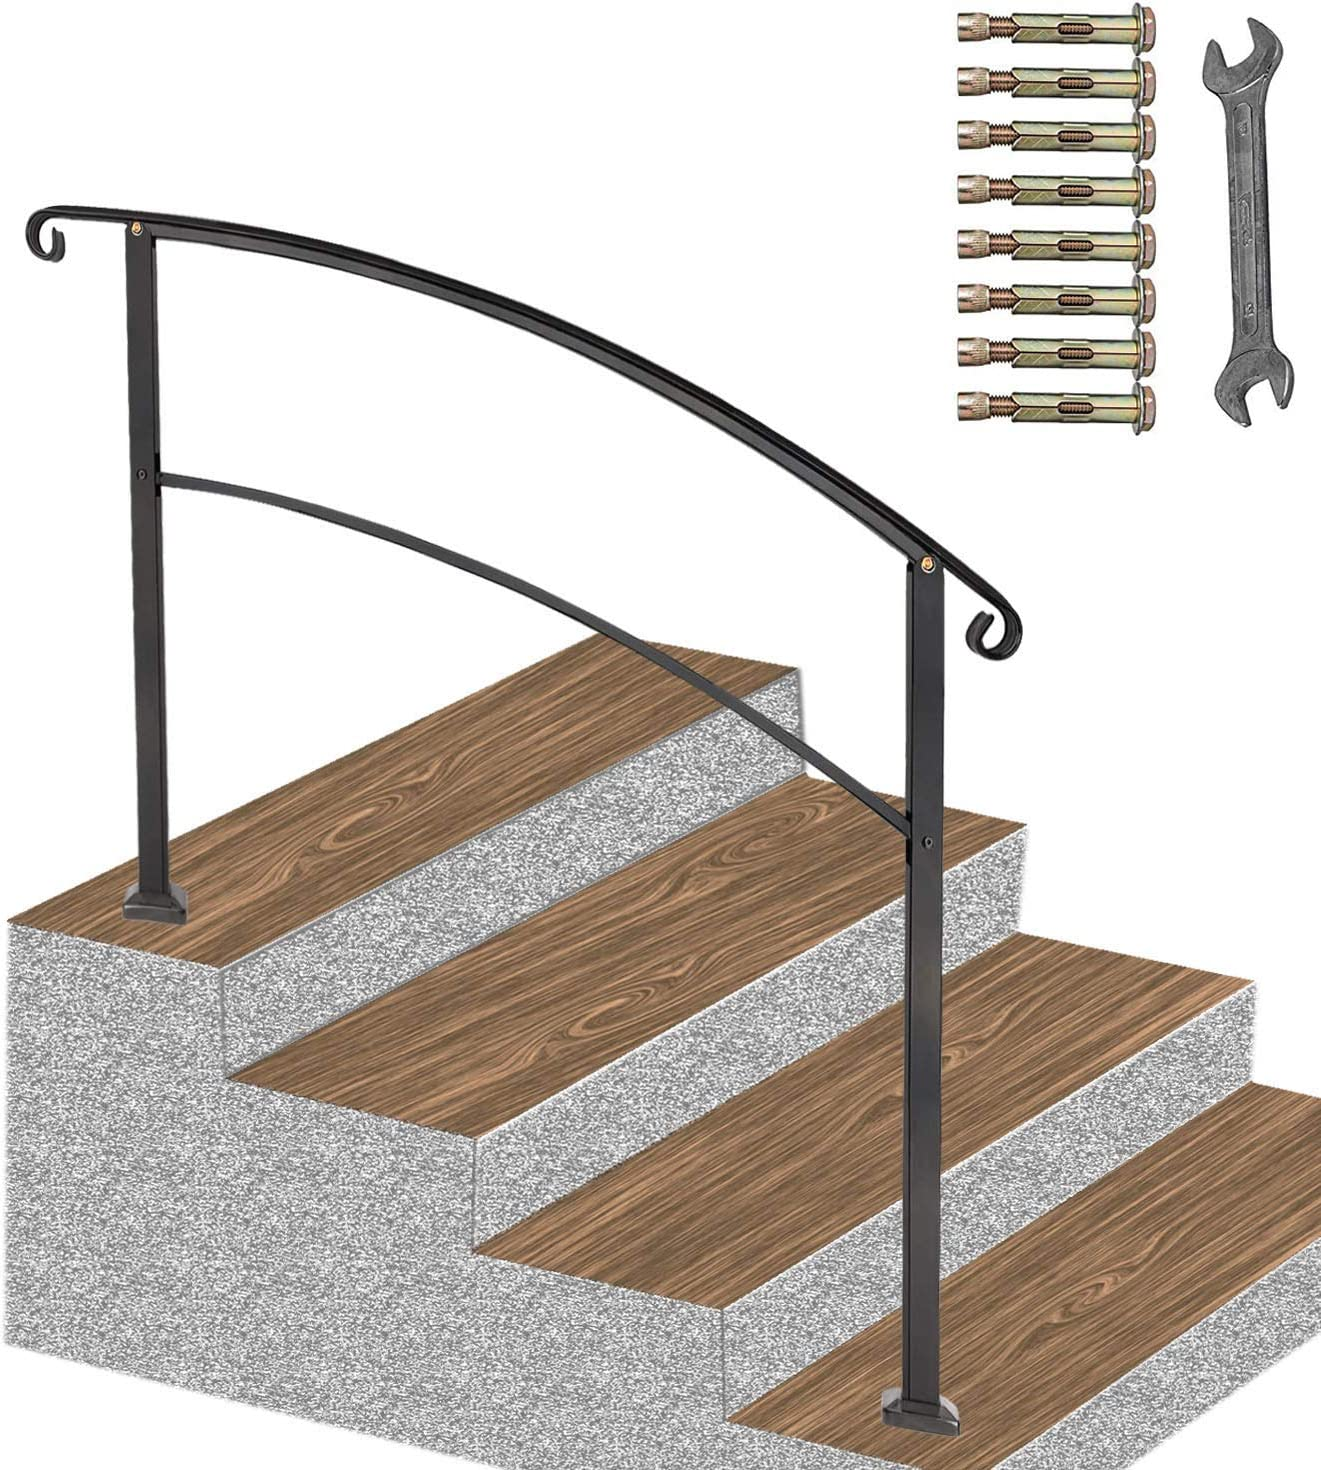 ATHOR Black Handrail,4 Step Handrail Fits 1 to 4 Steps Mattle Wrought Iron Handrail Stair Rail with Installation Kit Hand Rails for Outdoor Steps